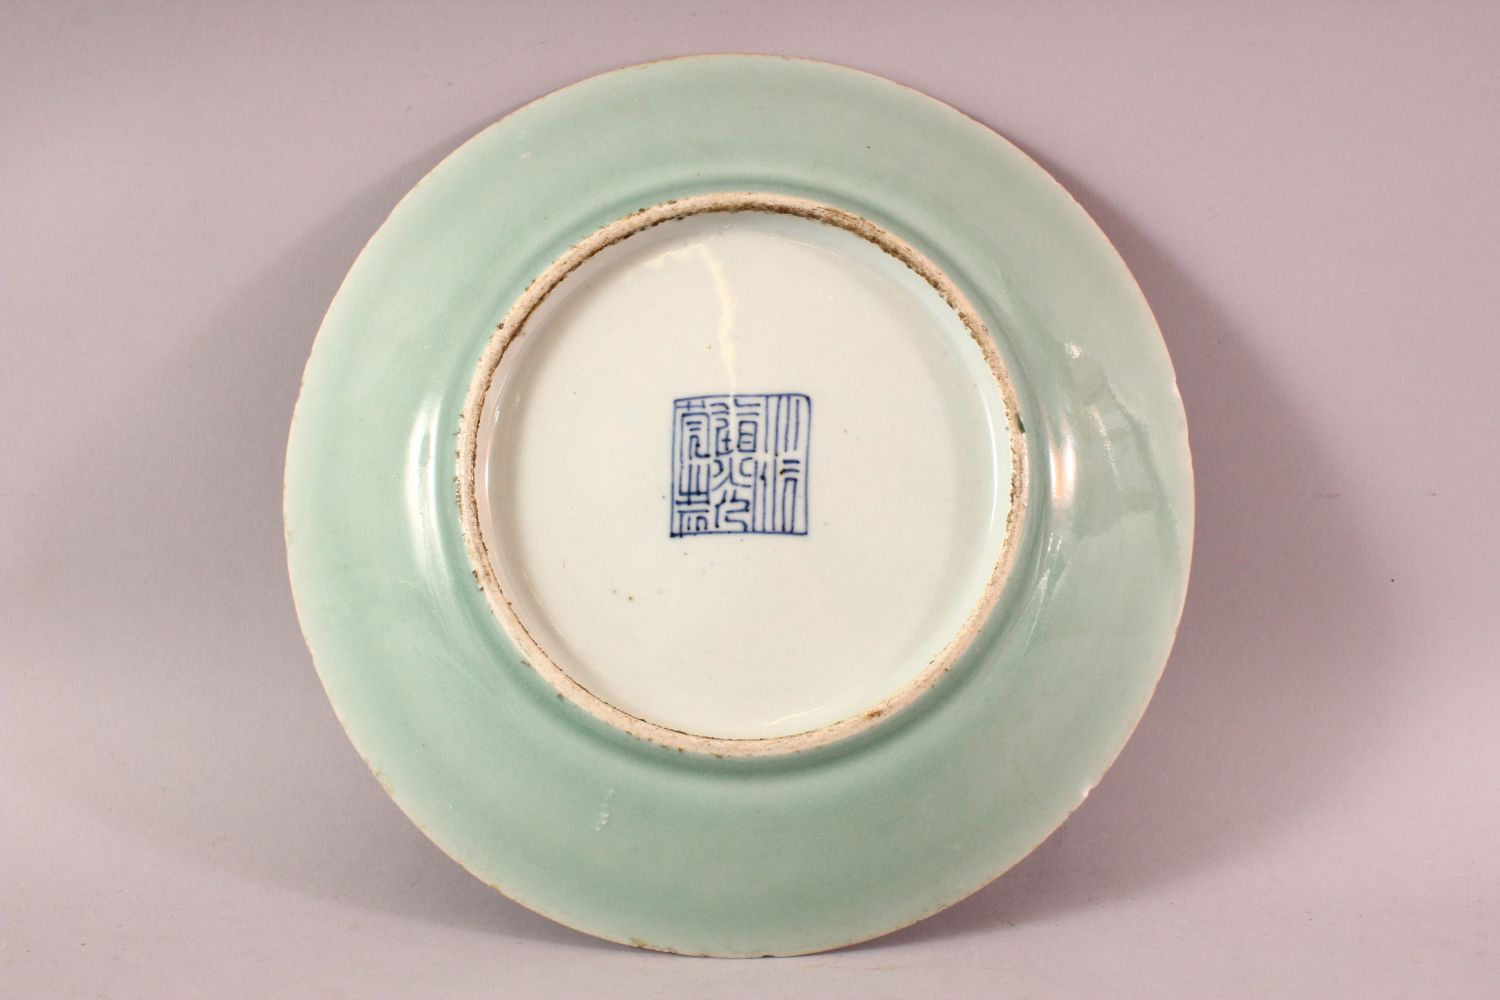 A 19TH CENTURY CHINESE CELADON FAMILLE ROSE PORCELAIN PLATE, With decoration of birds, flowers and - Image 6 of 7